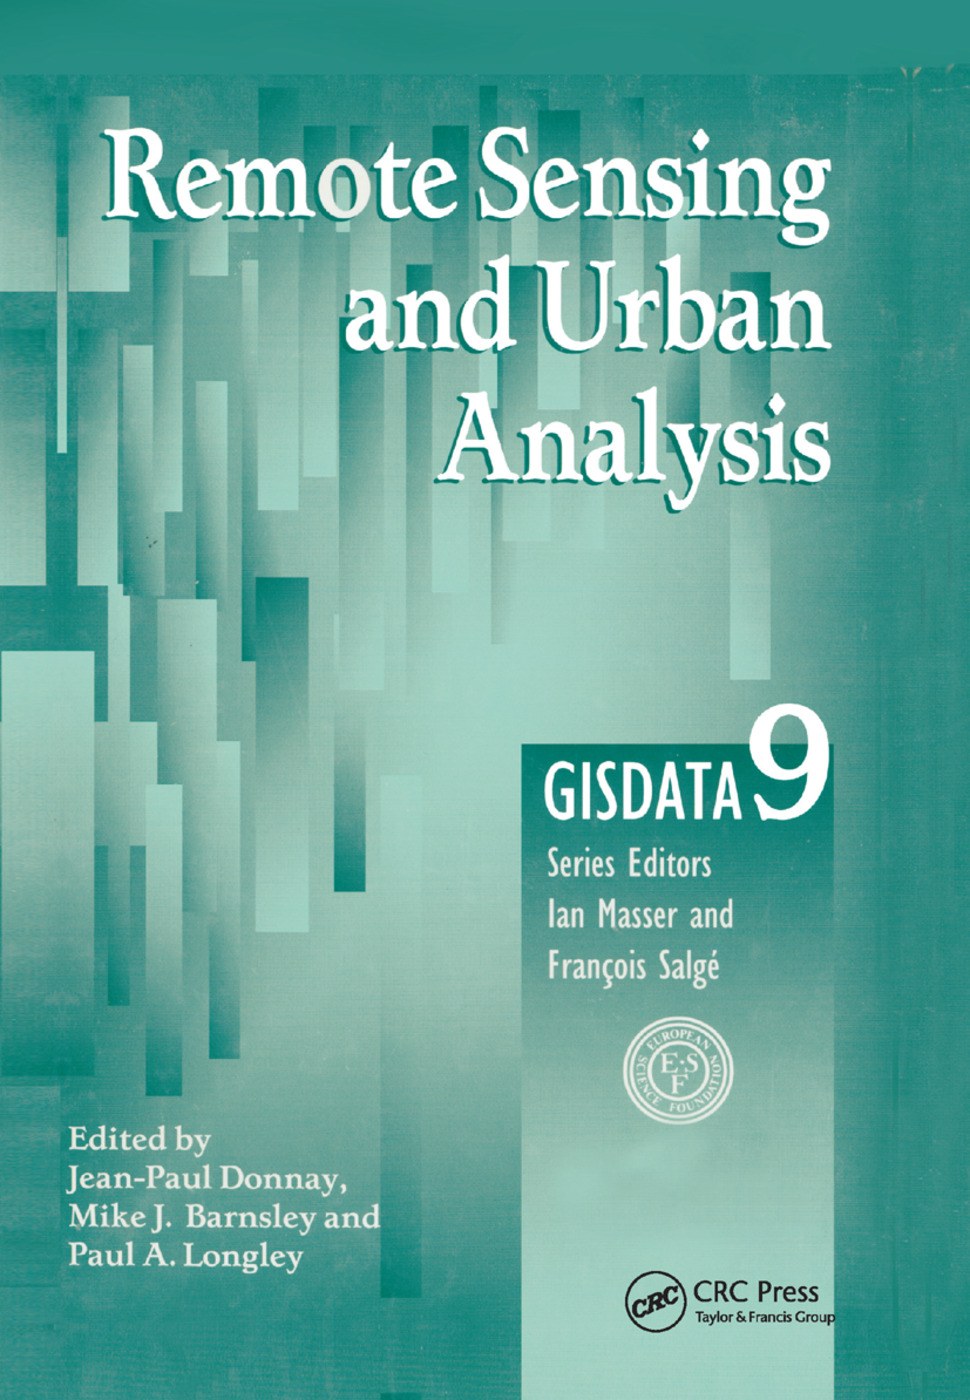 Remote Sensing and Urban Analysis: GISDATA 9 book cover